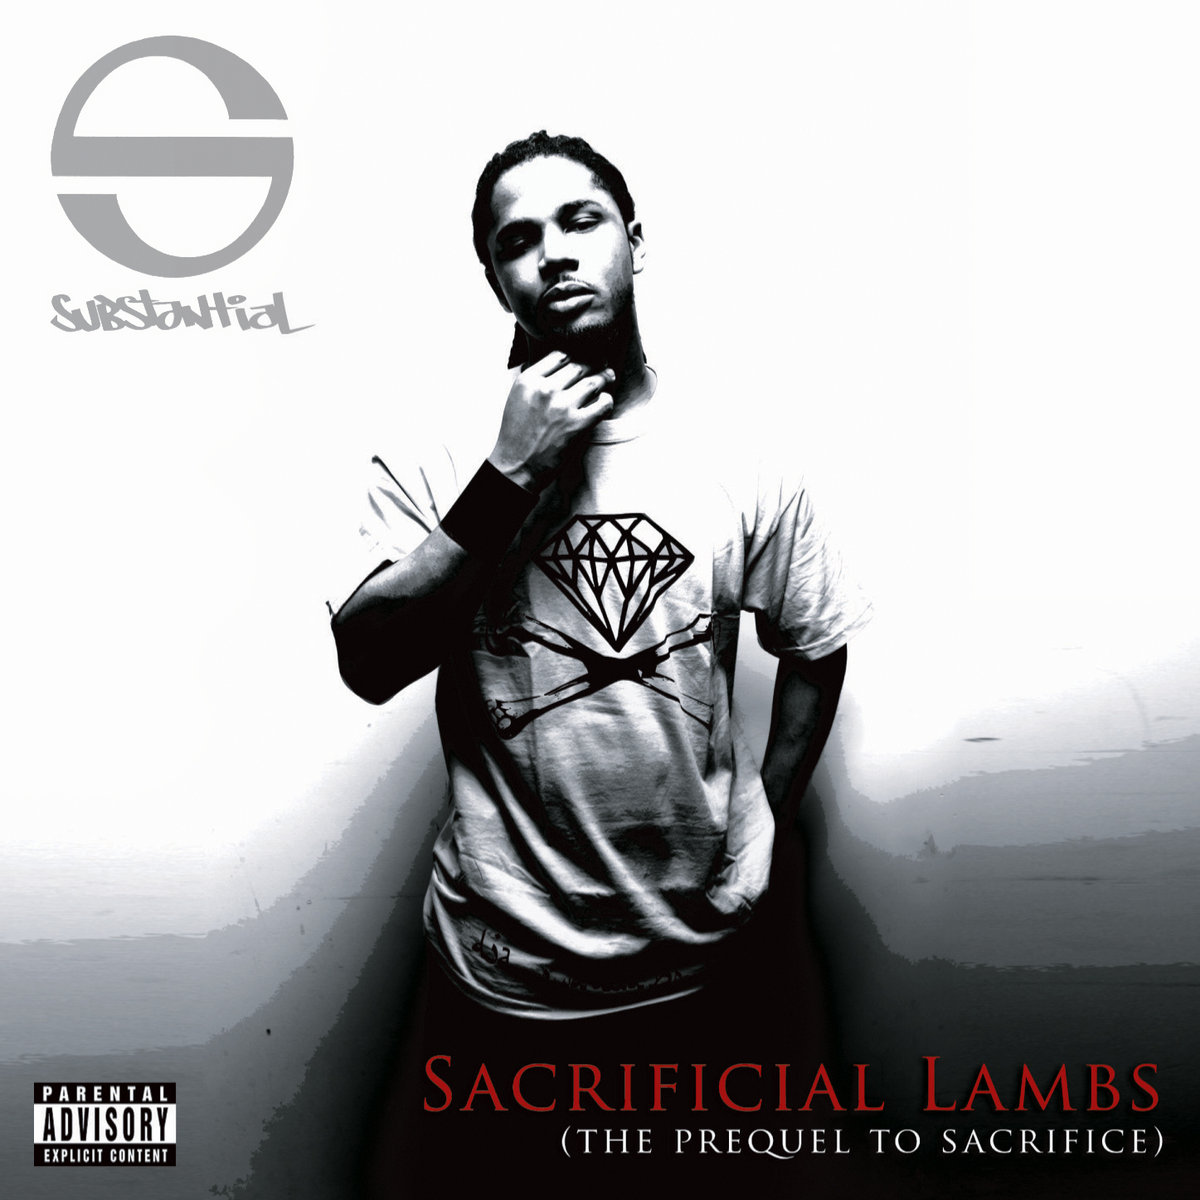 Sacrificial Lambs (The Prequel to Sacrifice) | Substantial